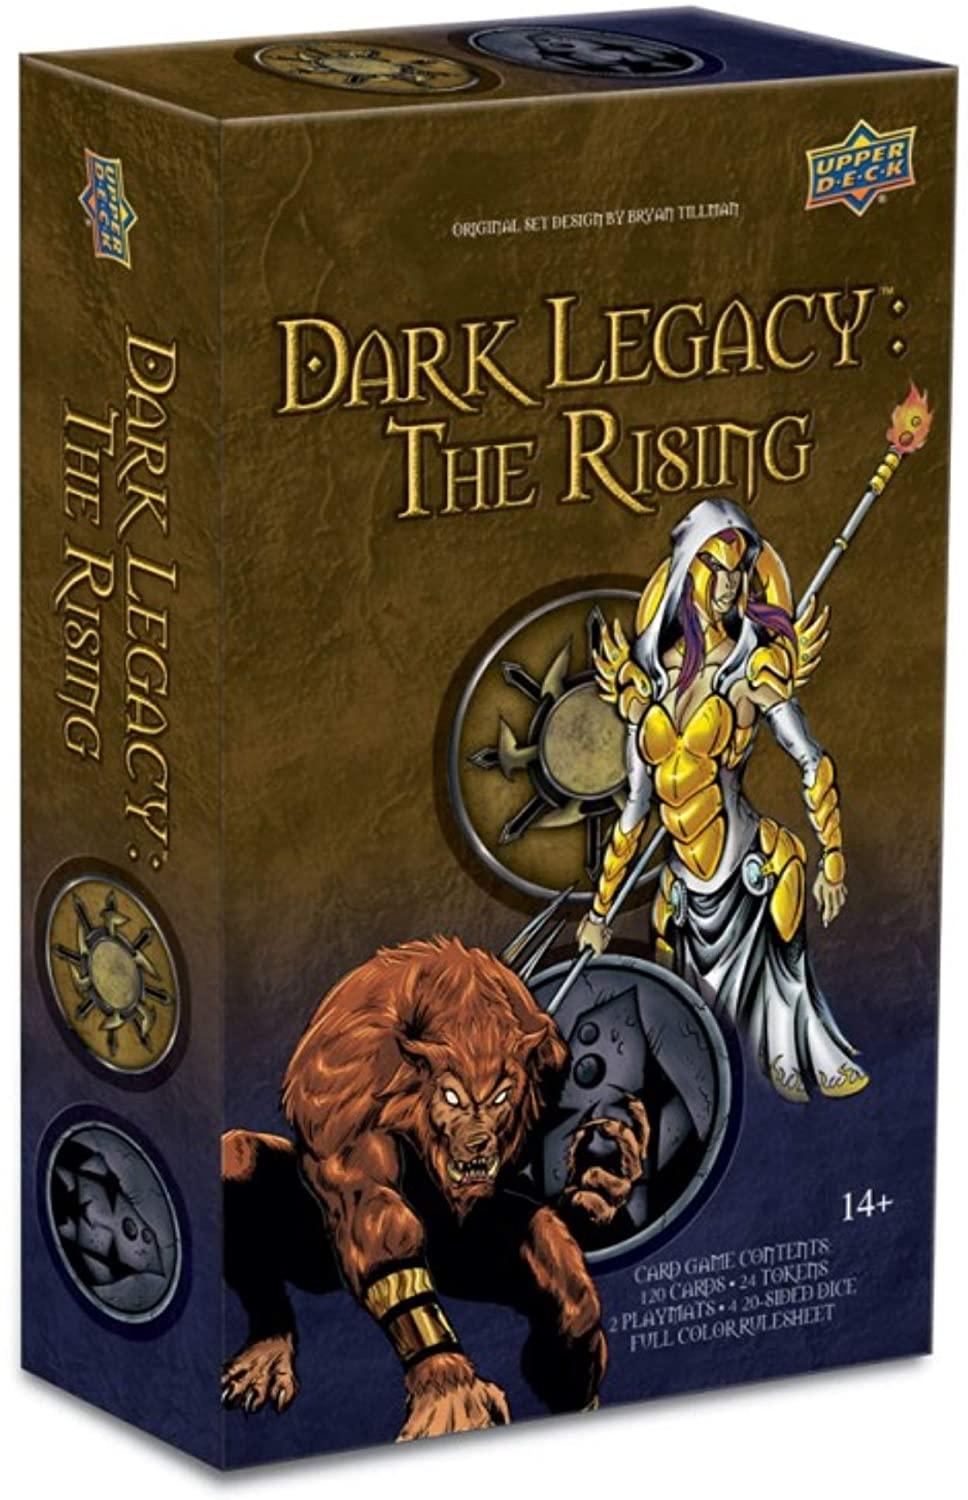 Dark Legacy: The Rising: Divine vs Darkness | Misty Mountain Games